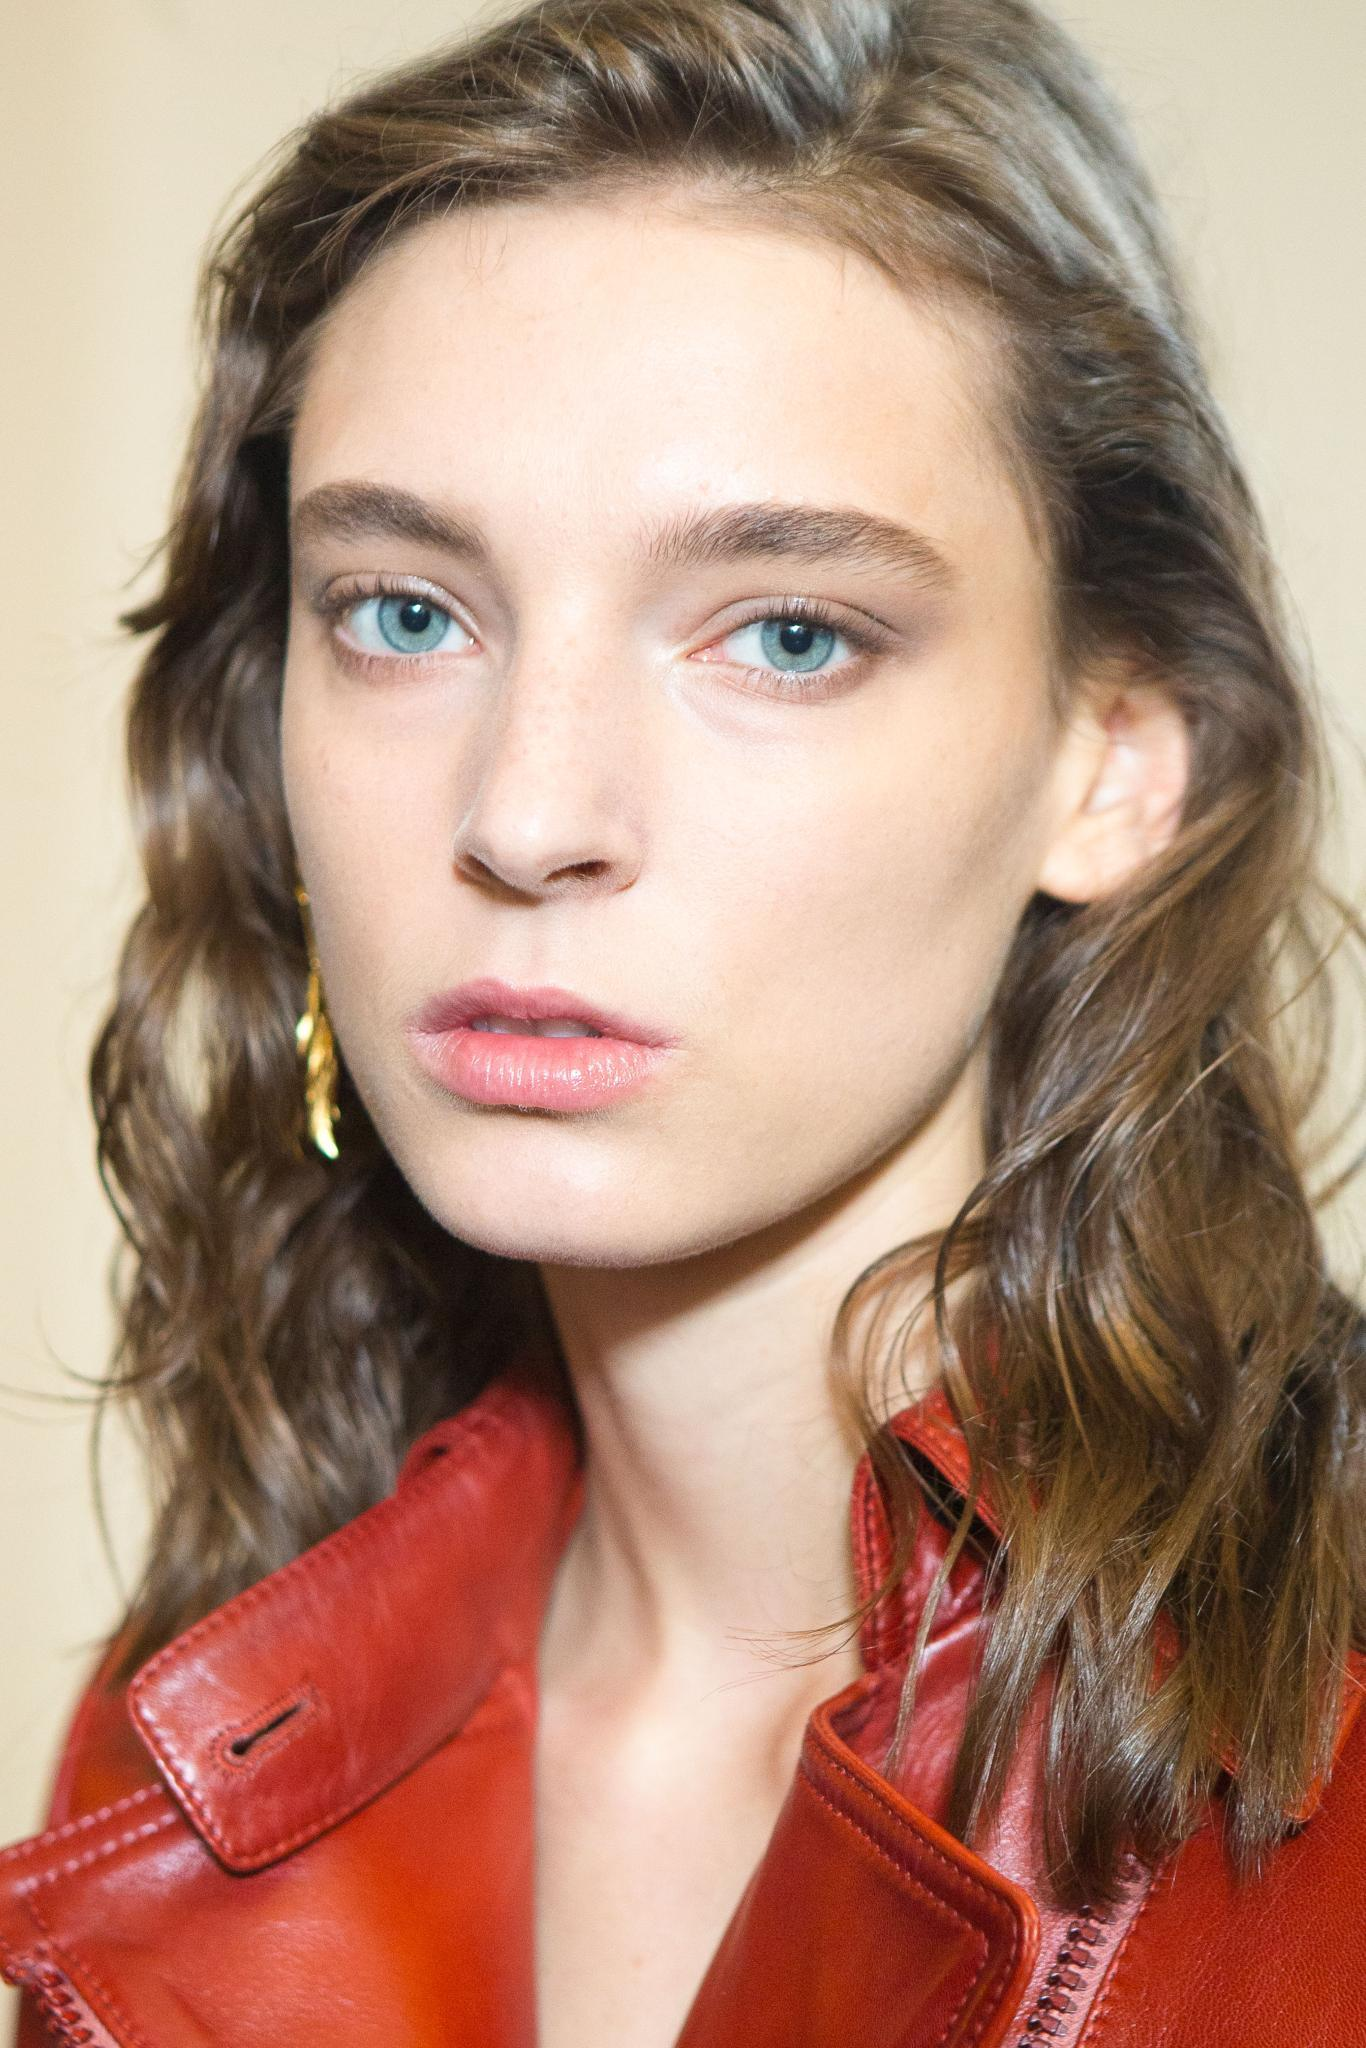 close up shot of model with 2B hair, wearing red shirt and gold earrings, posing